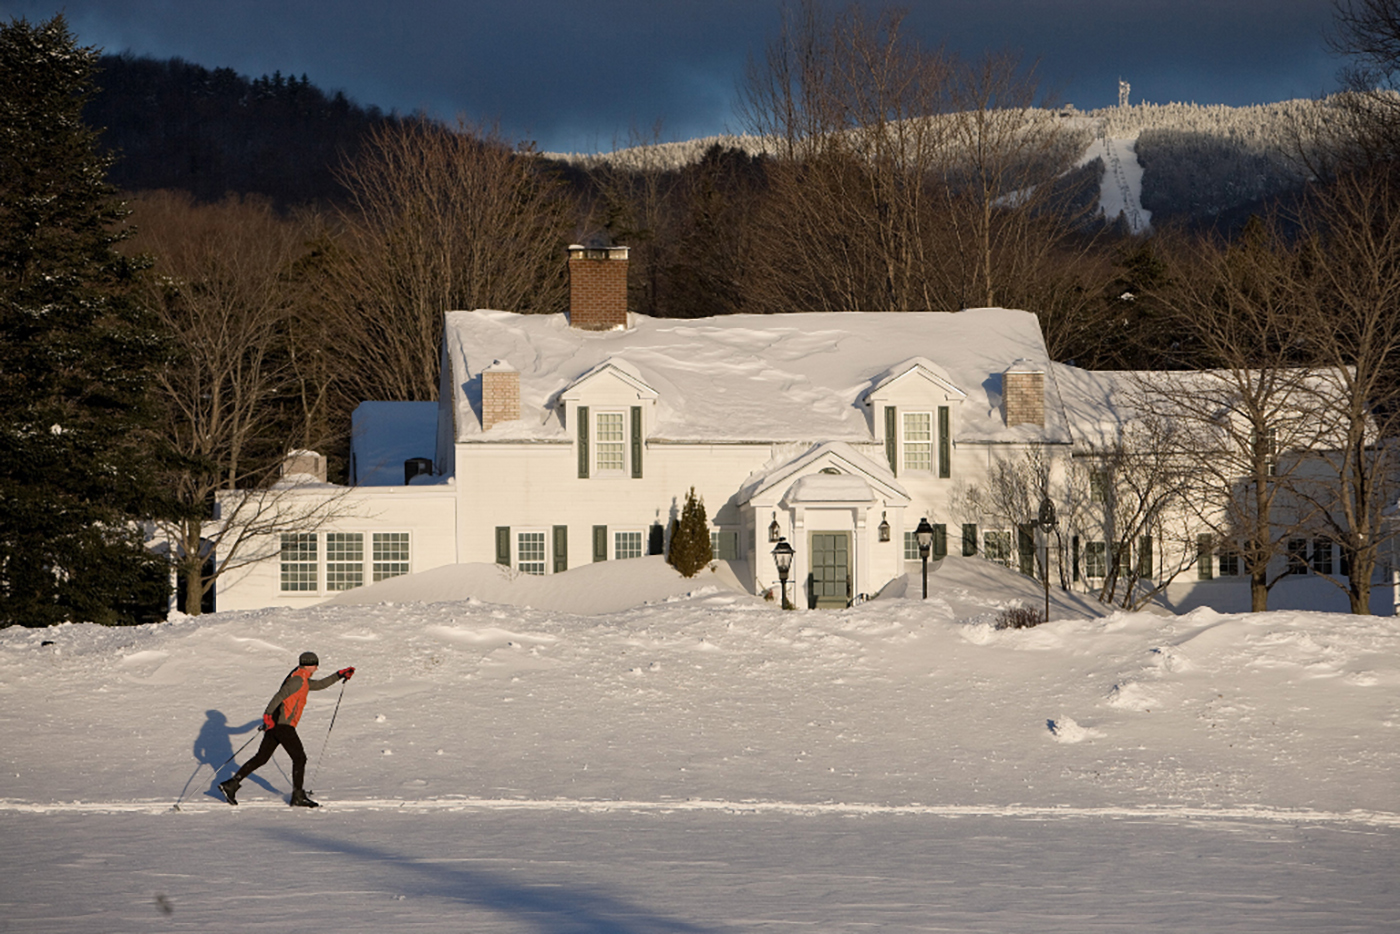 A cross-country skier passes in front of the Hermitage Inn. The Hermitage Club's fully marked and maintained 9-mile trail offers the opportunity to explore Vermont's beautiful Deerfield Valley. Whether you want to challenge your pace on skis or go snowshoeing, the trails are accessible to all. Photo courtesy Hermitage Club.